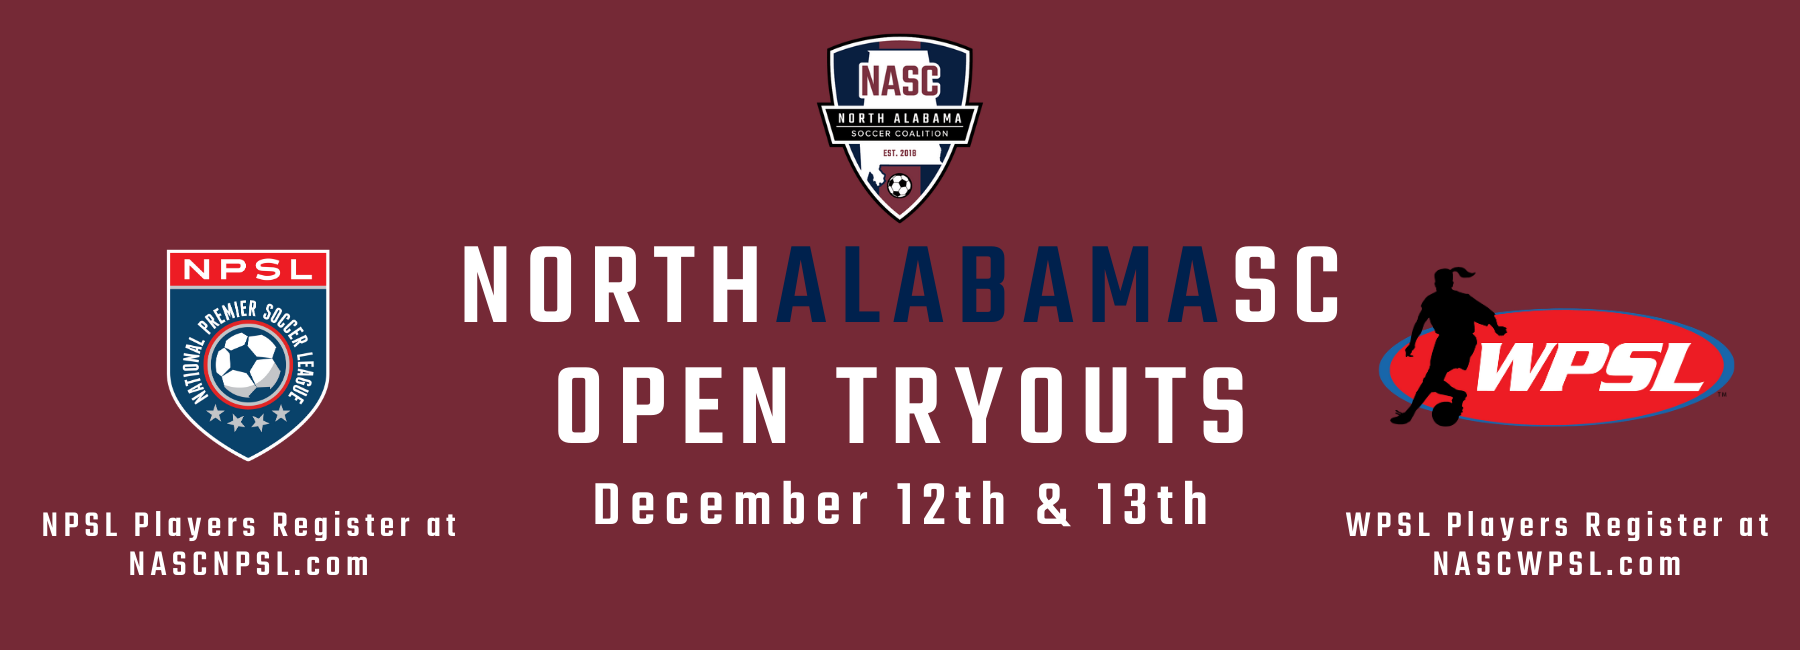 Register for NPSL & WPSL OPEN Tryouts on December 12th & 13th